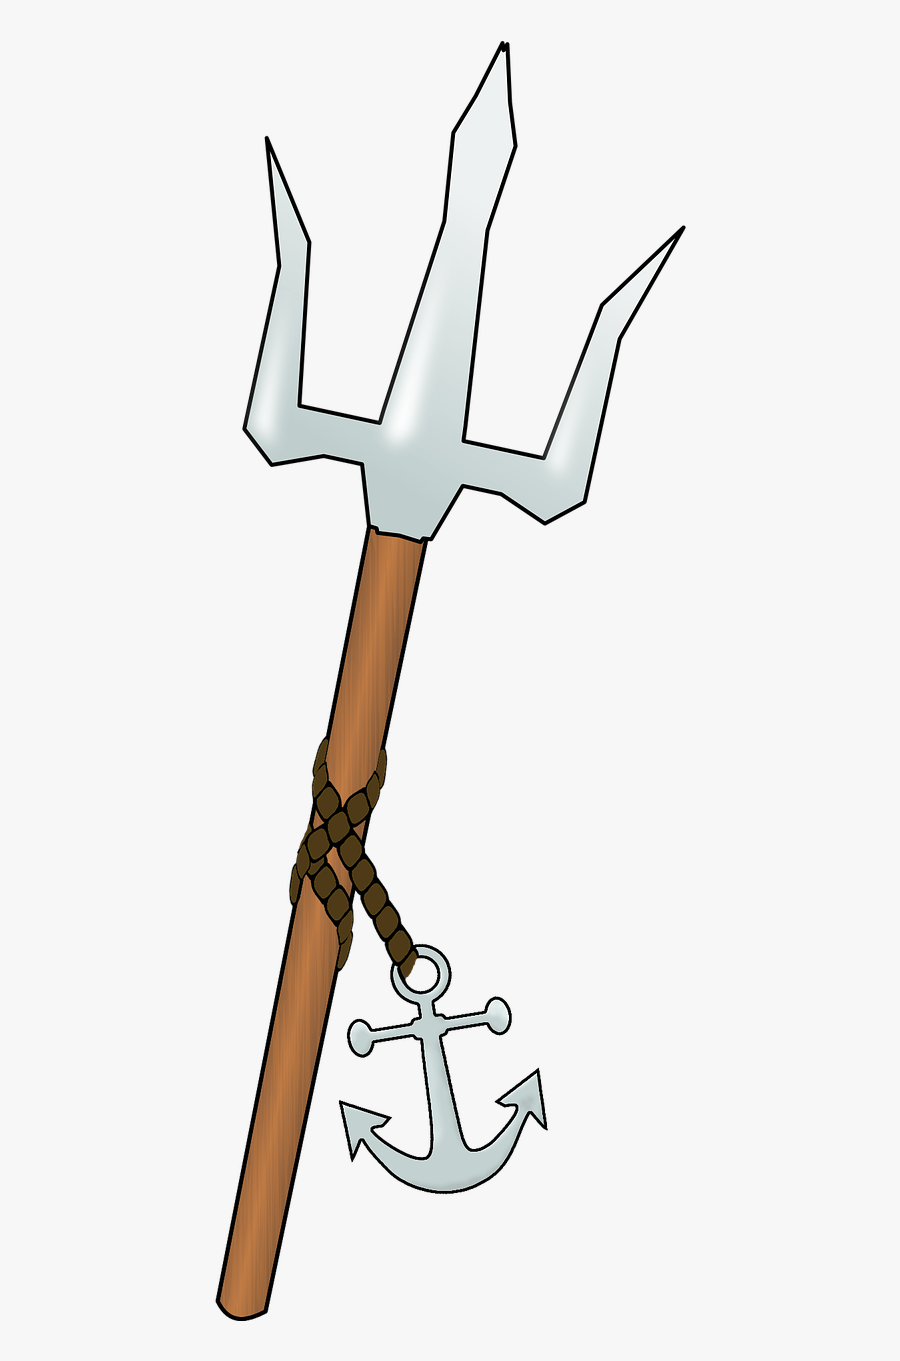 How To Draw A Trident : trident, Trident, Poseidon, Drawing, Transparent, Clipart, ClipartKey